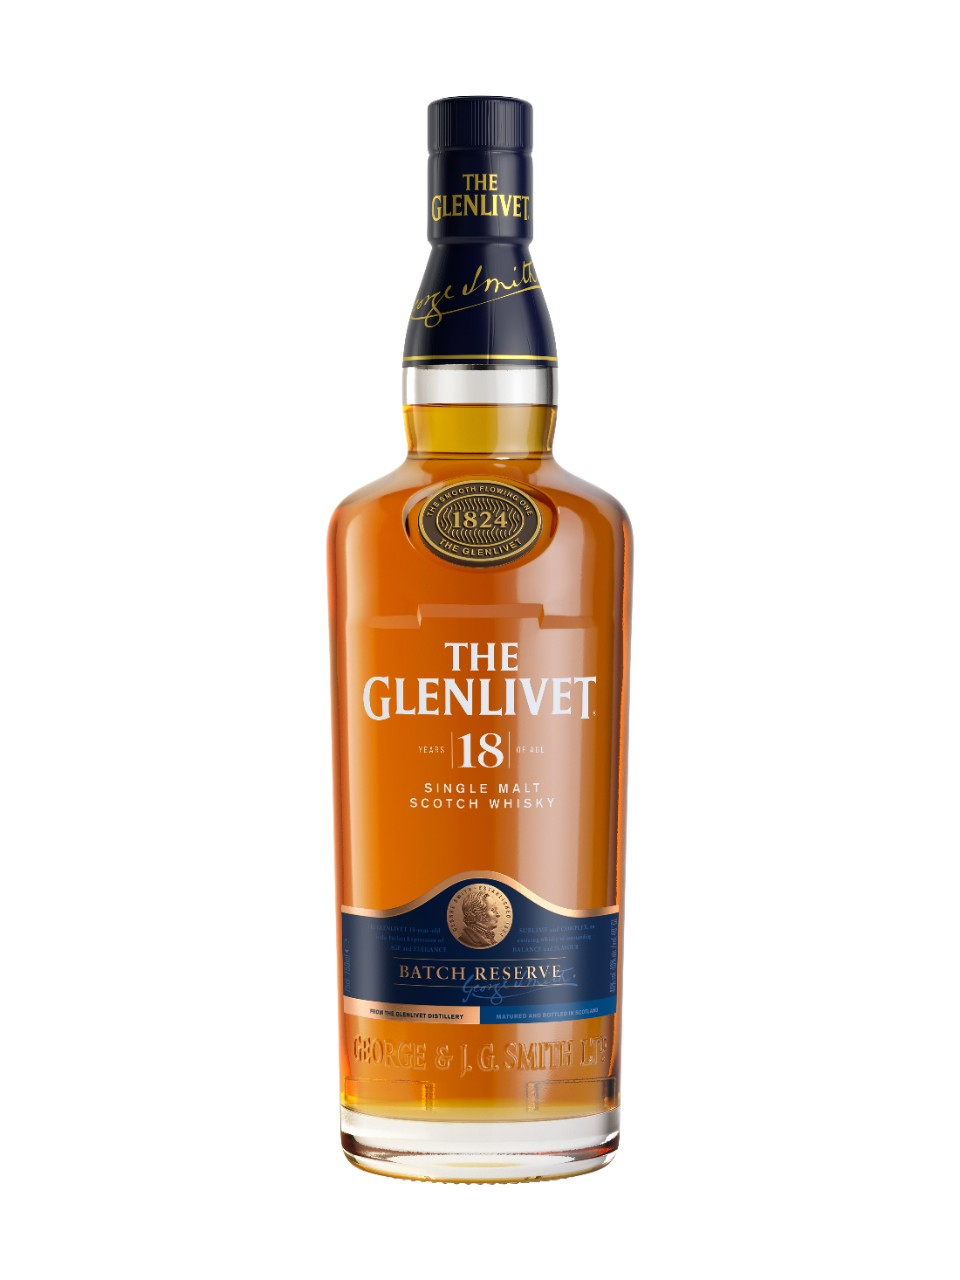 Image for The Glenlivet 18 Year Old Single Malt Scotch Whisky from LCBO